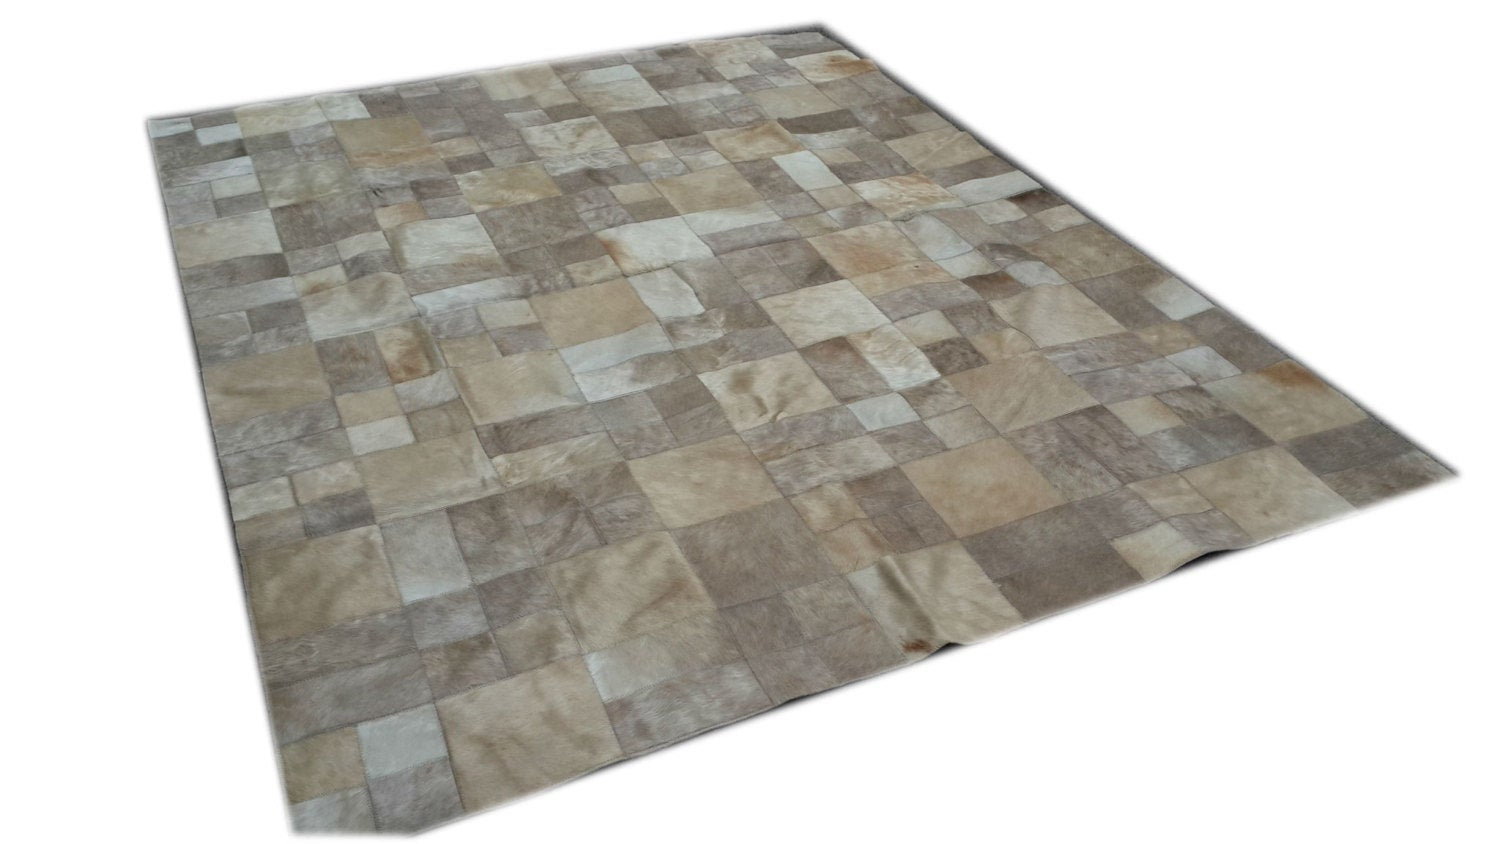 Cowhide Patchwork Rug 6 x 8 ft